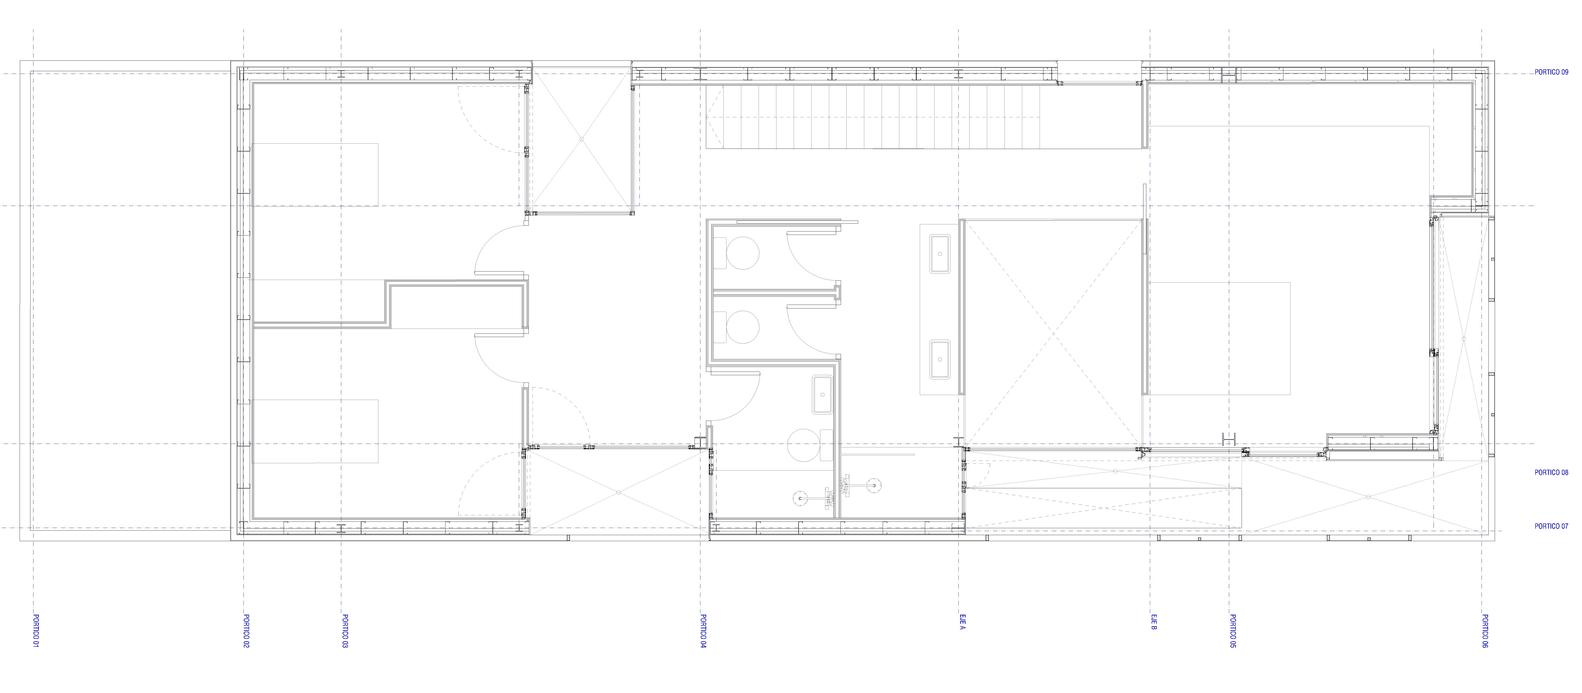 gallery of single family house castelldefels ral 20 single family house castelldefels first floor plan